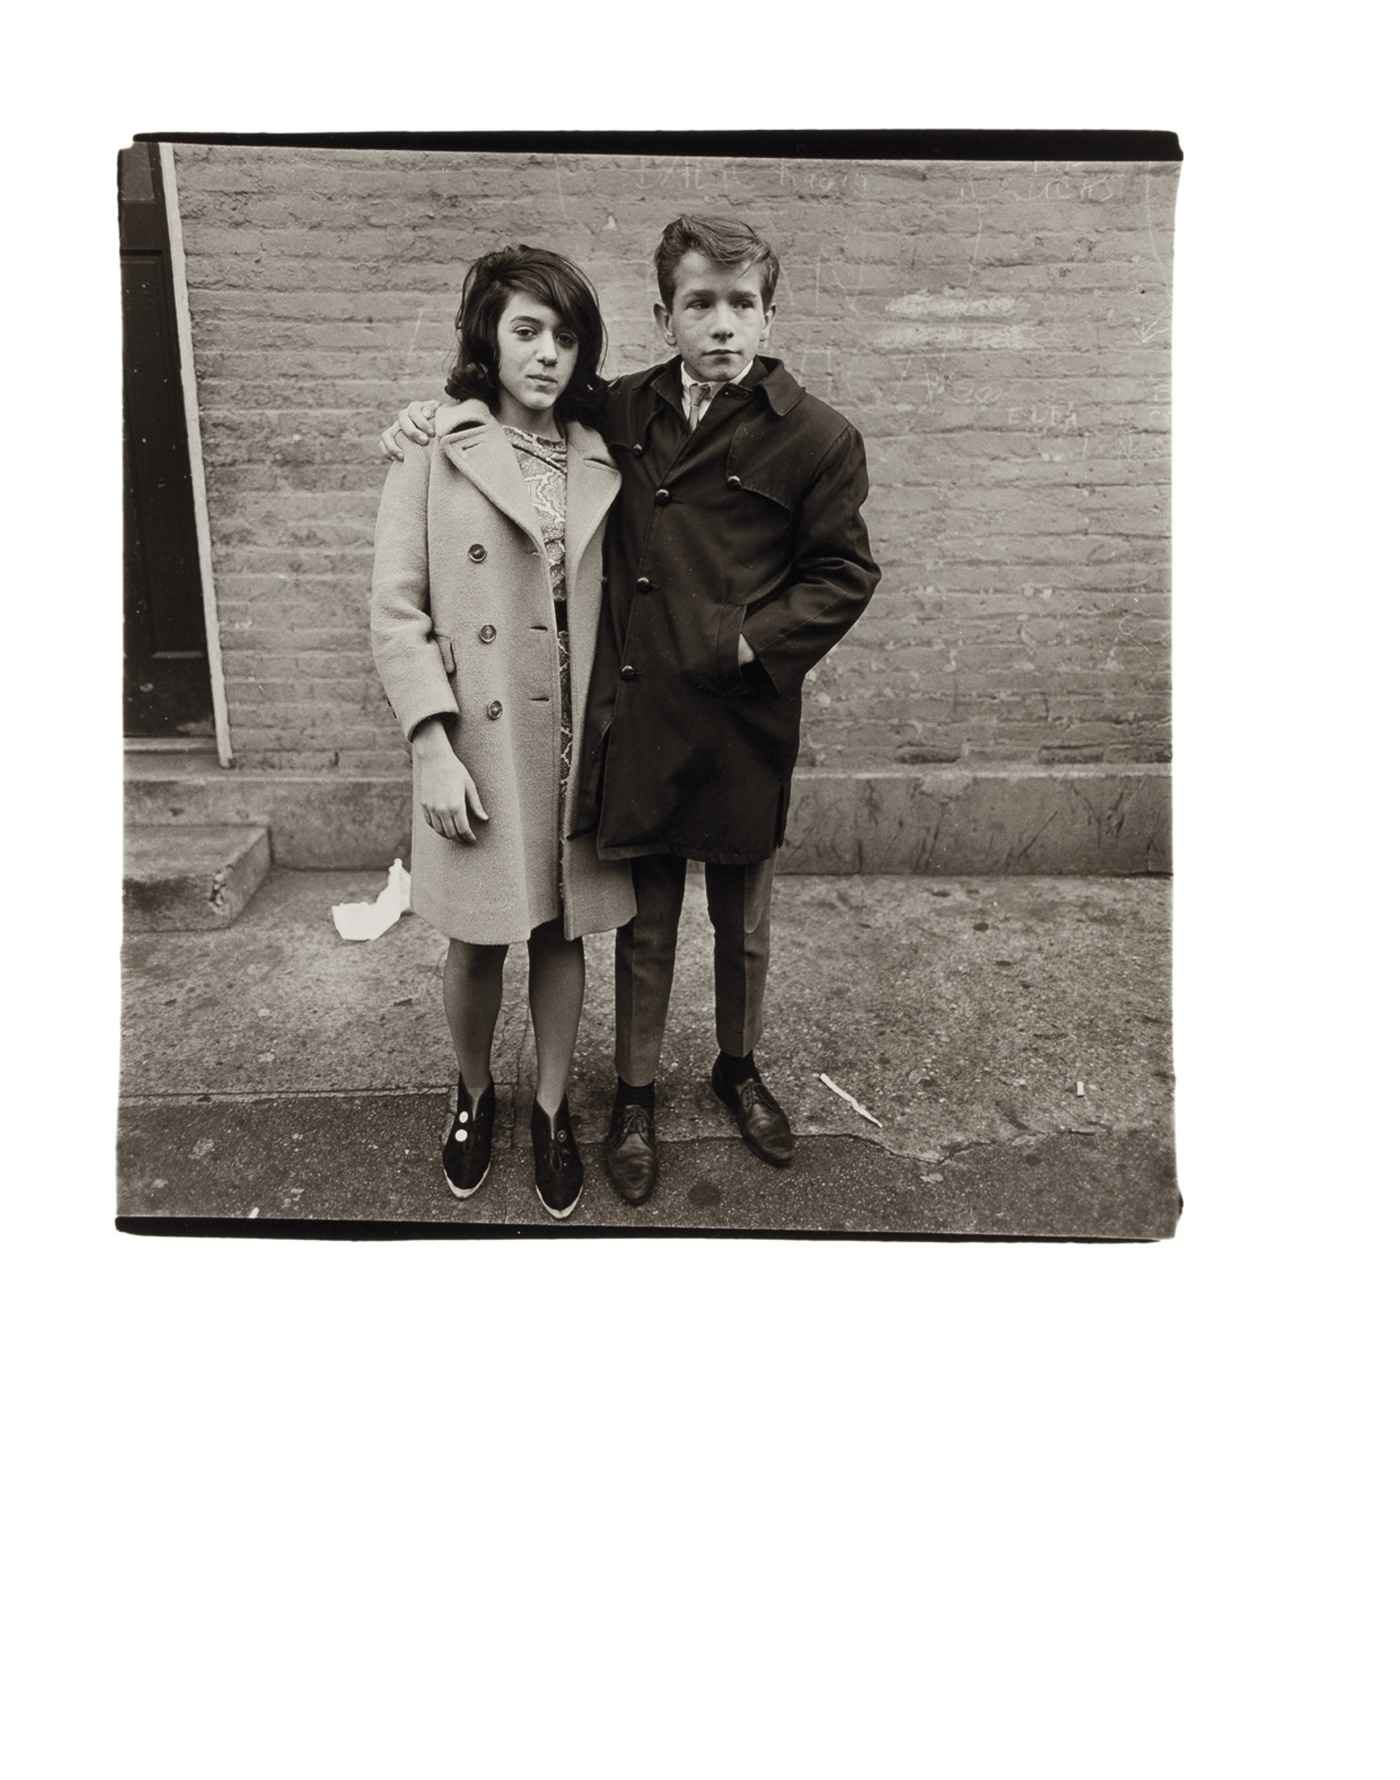 20/21 Photographs auction at Christies